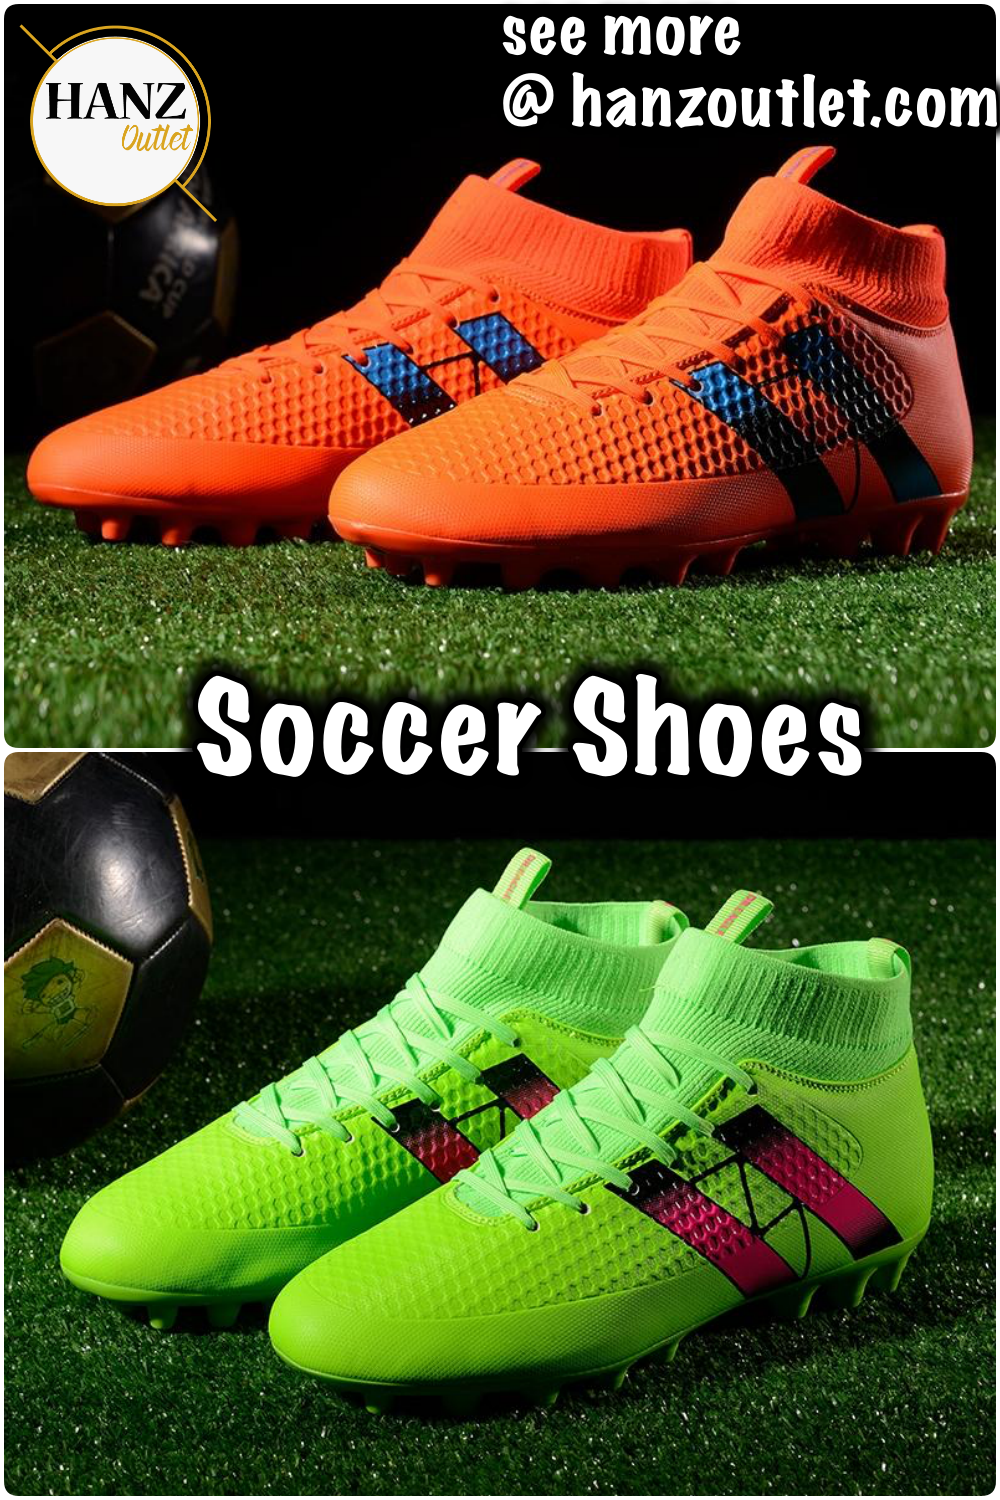 845f4811ed0 Spike soccer football shoes high ankle men crampon football boots superfly  original cleats football sneakers  Spikefootballshoes  soccershoes   footballshoes ...